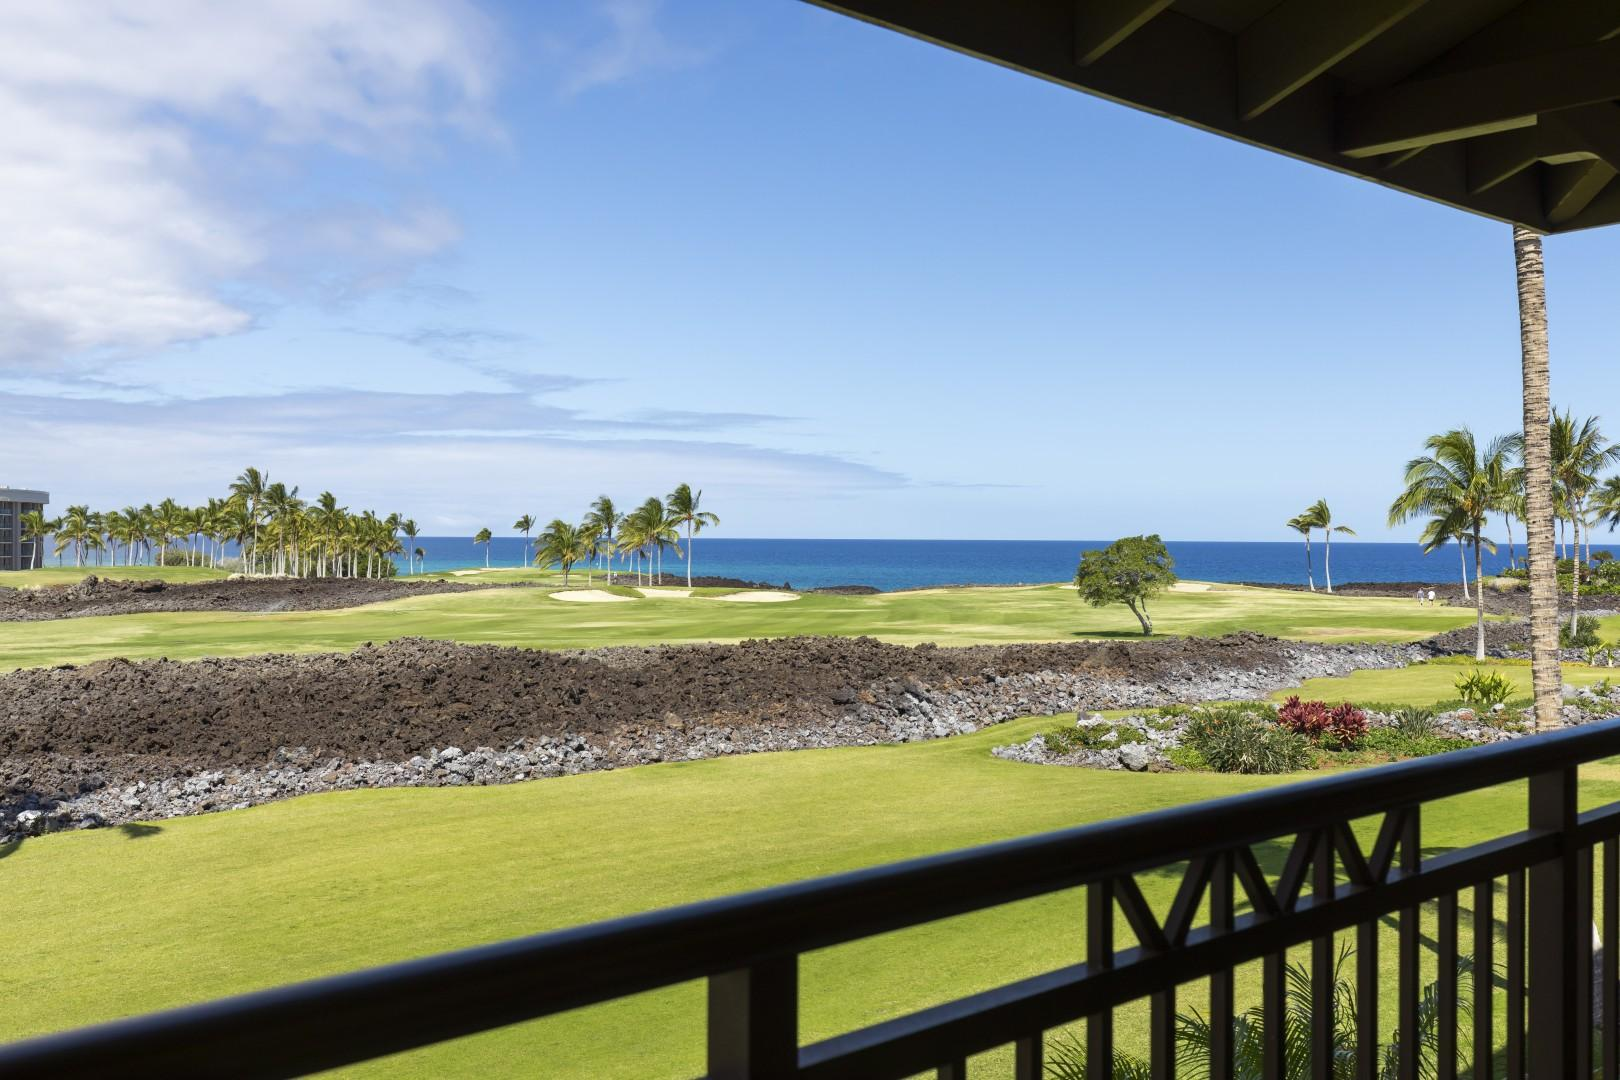 Views galore from the lanai day and night.